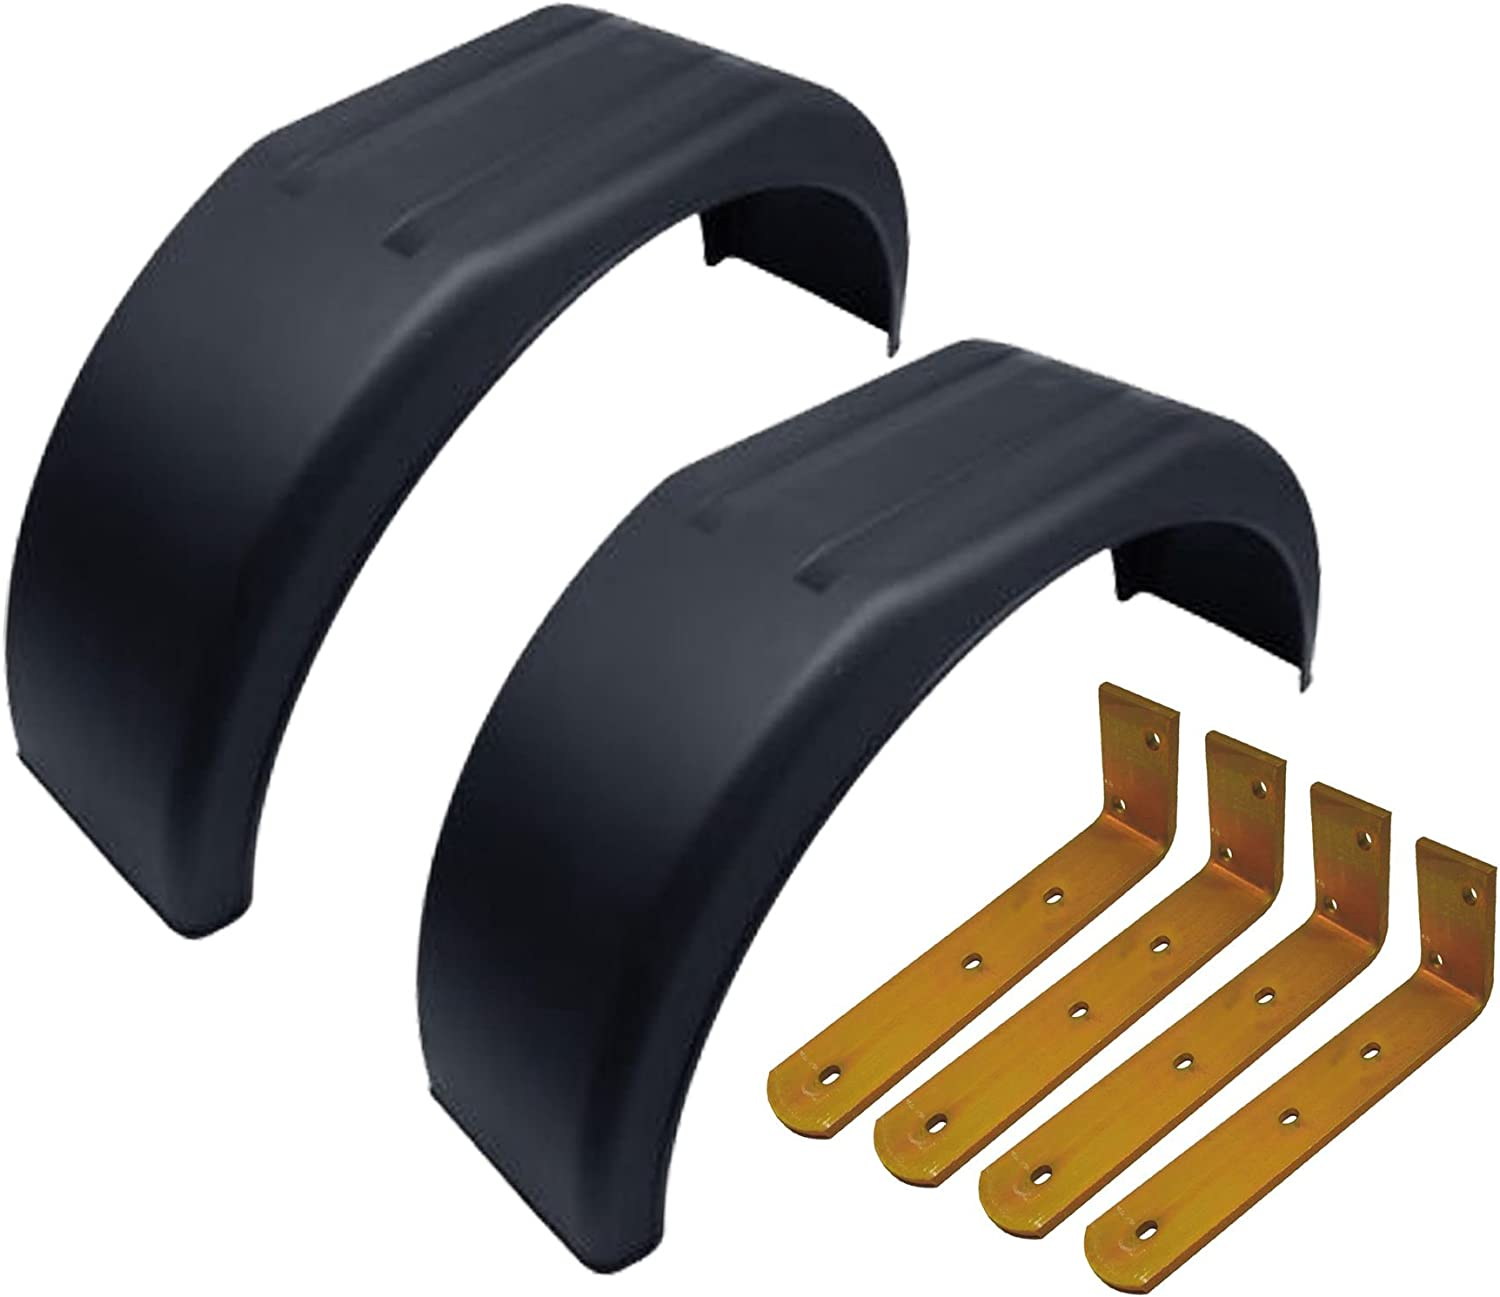 AB Tools-Maypole 13 Metal Mudguards Fender Brackets Pair 4 Pack Offset Fit /& Mud Guard Angle Large